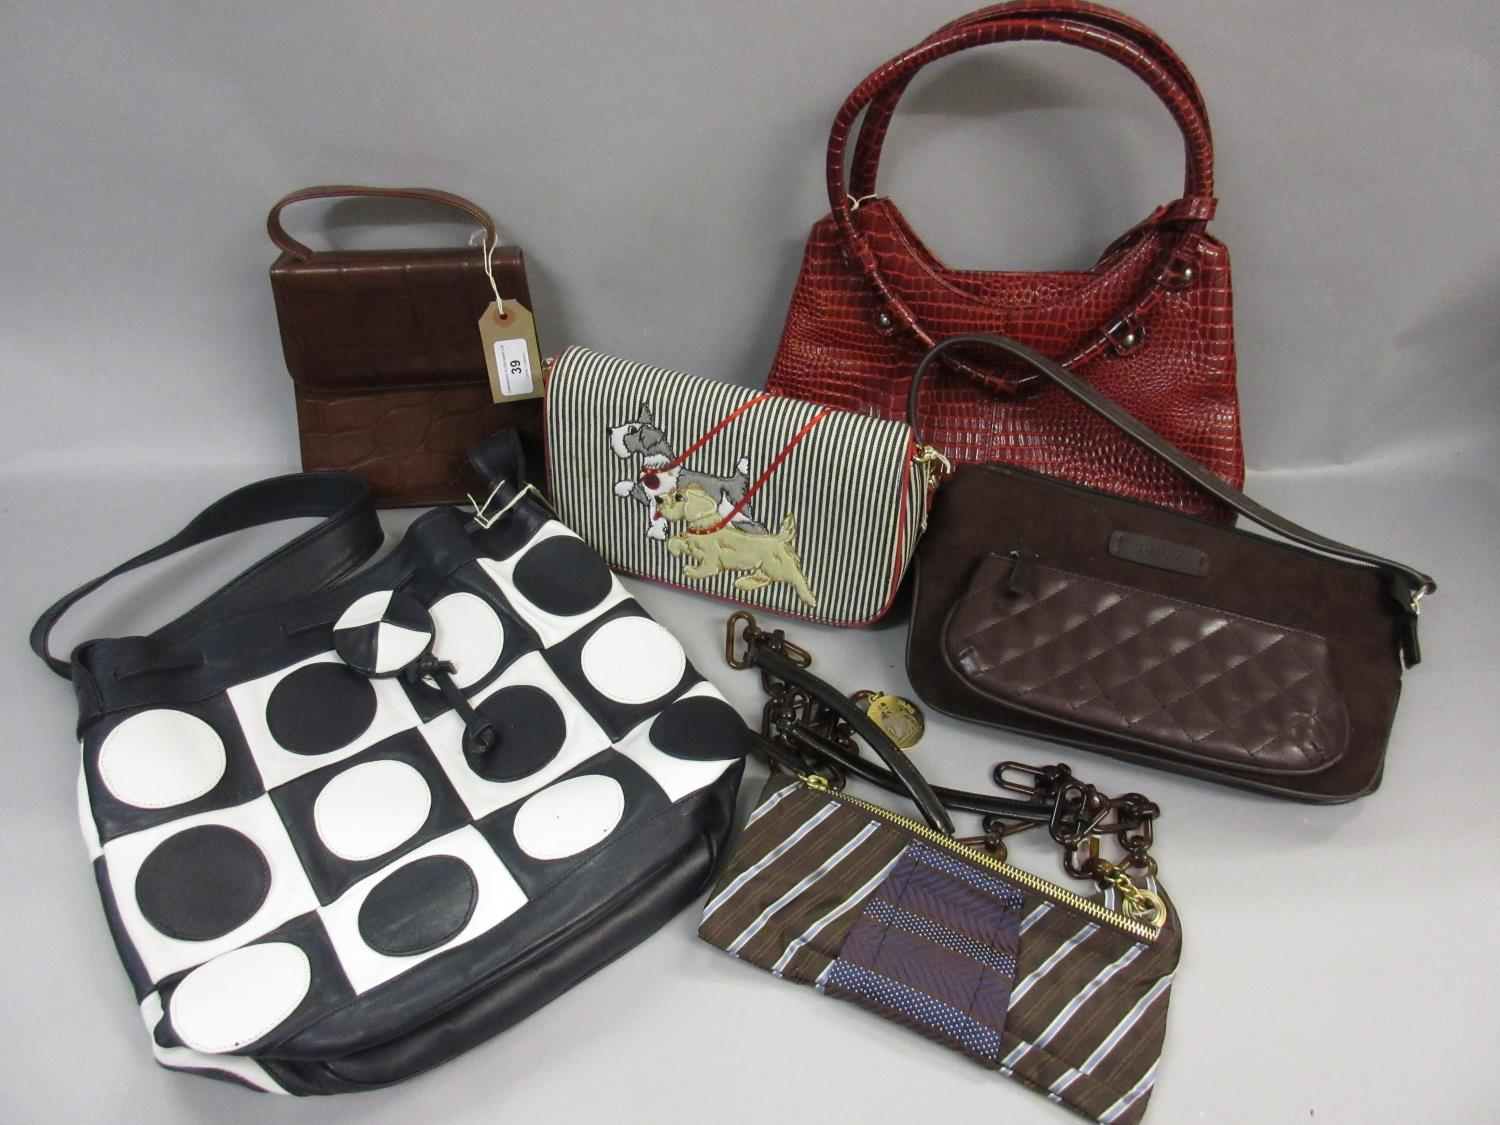 Lot 39 - Small Osprey brown leather handbag, Lulu Guinness blue and white striped canvas bag with dog